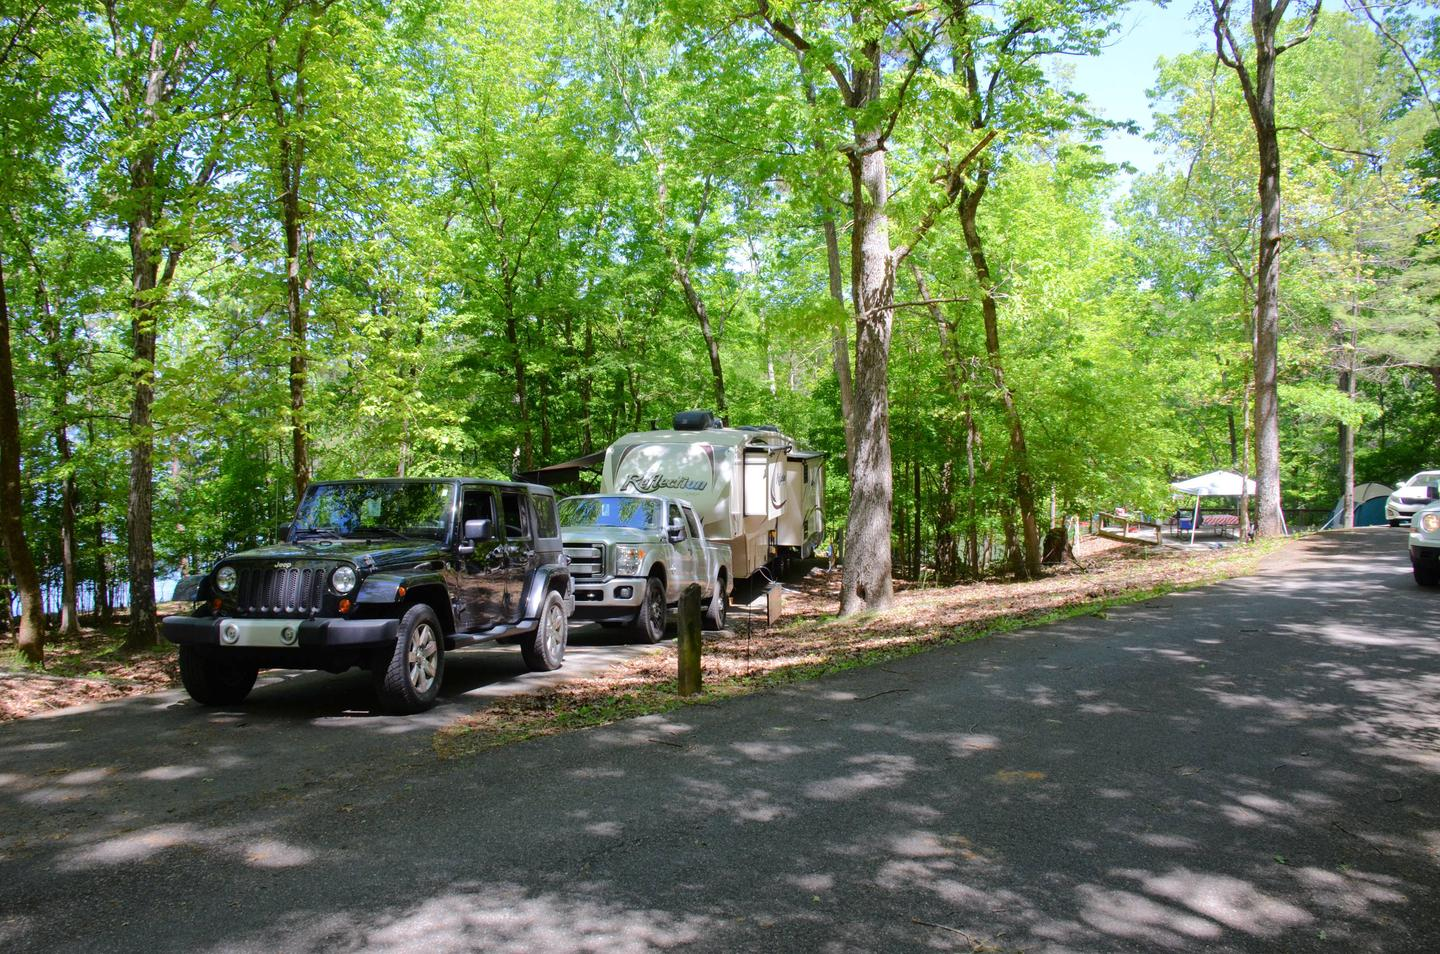 Driveway entrance angle/slope, utilities-side clearance.McKinney Campground, campsite 84